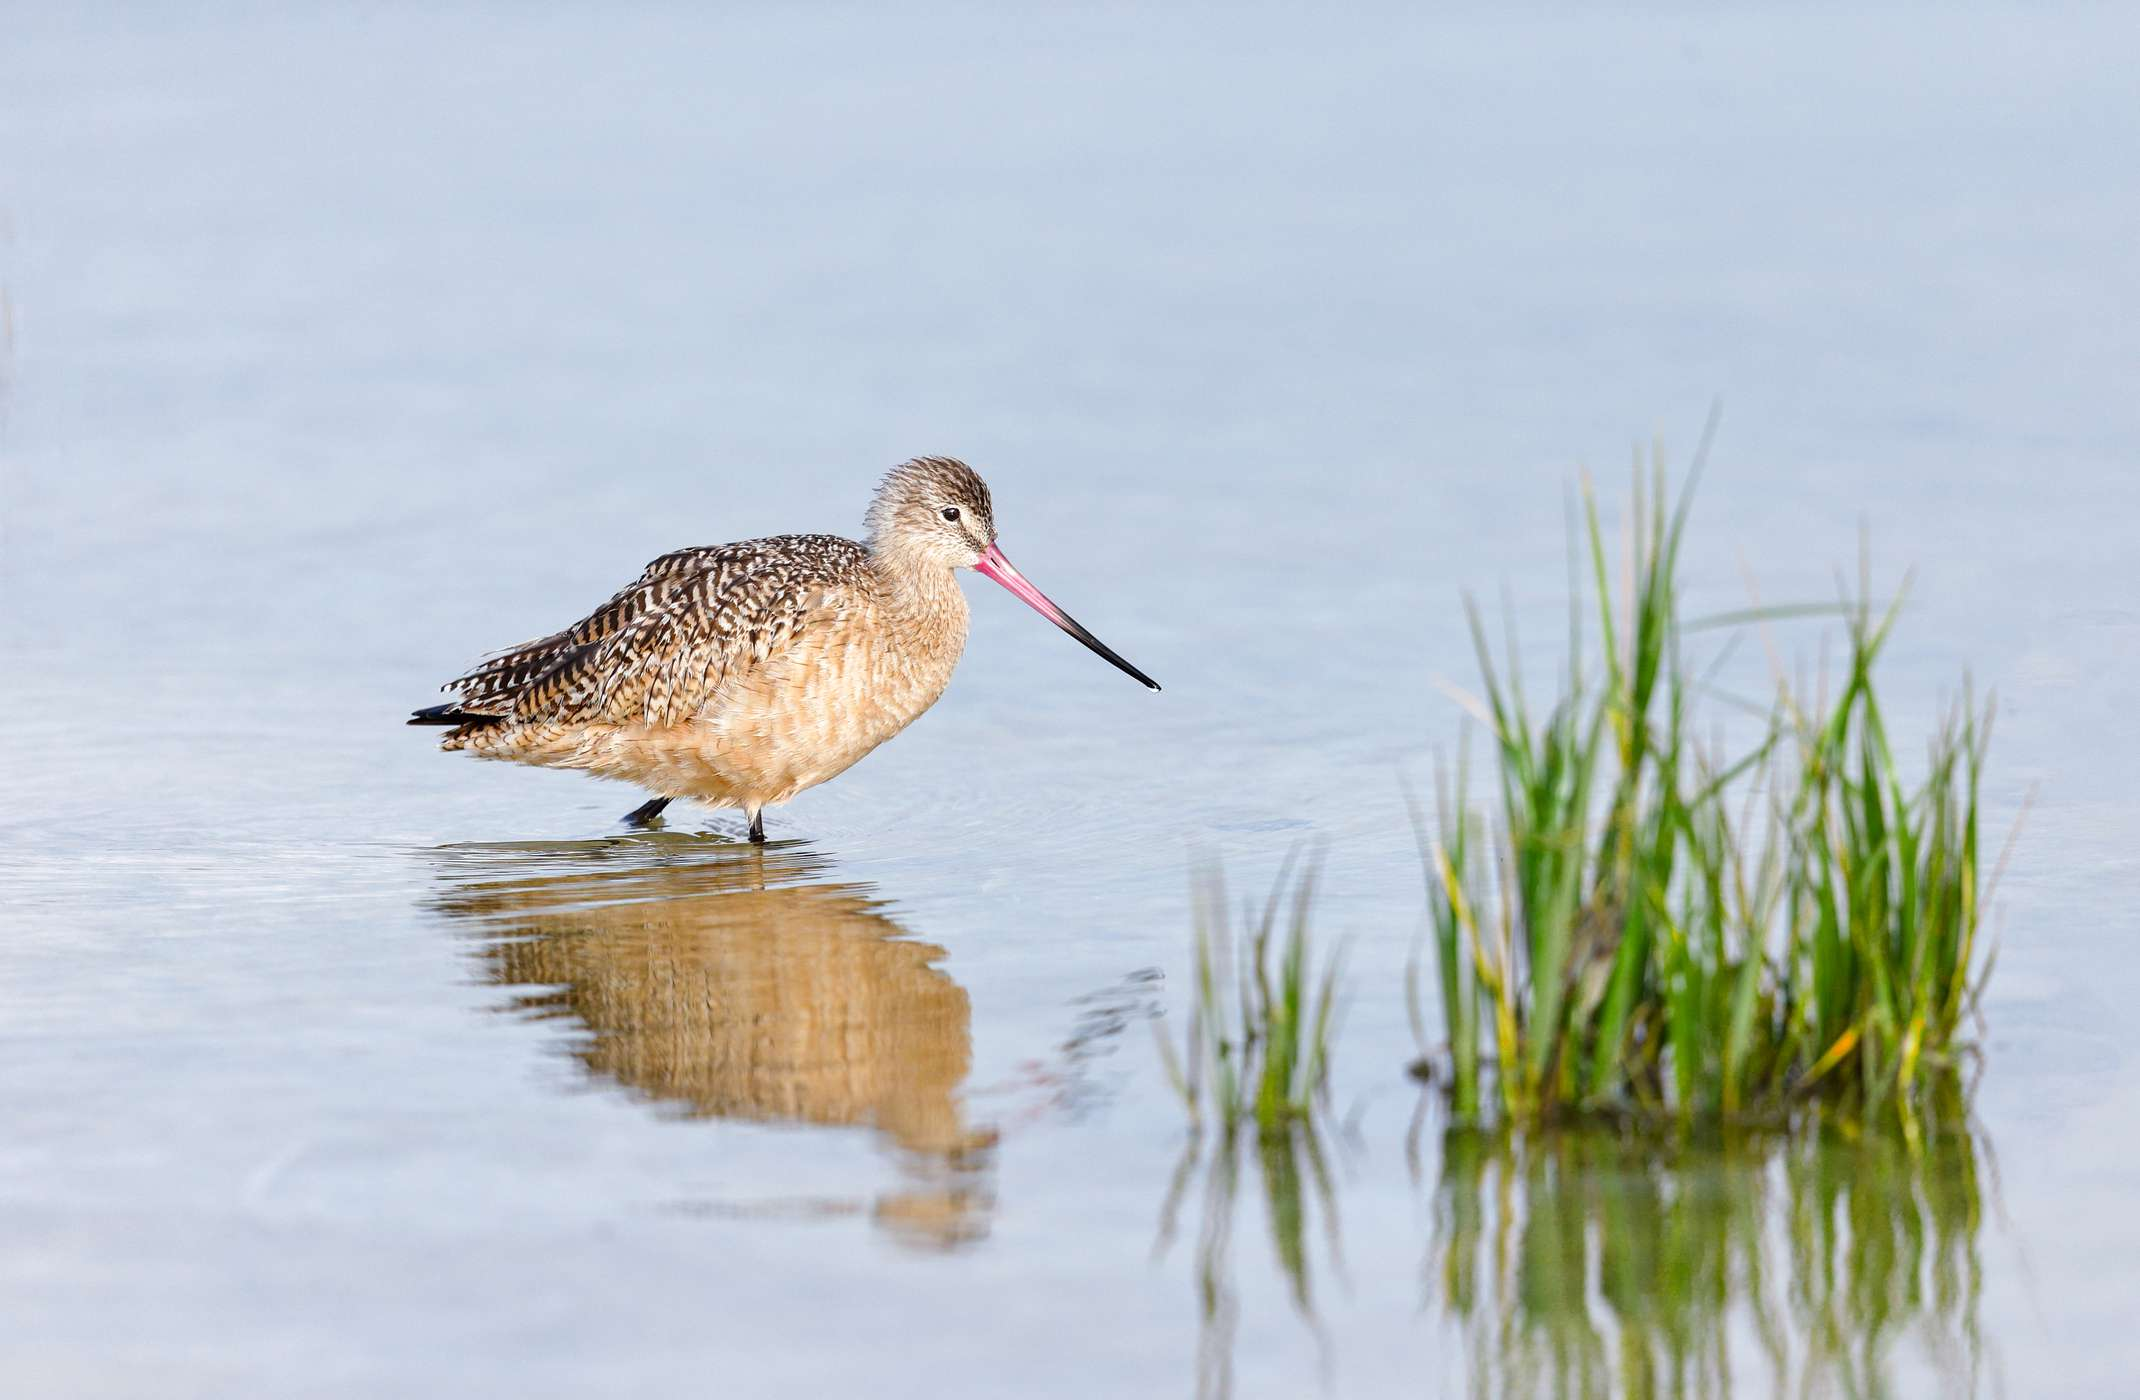 Long-billed curlew in shallow water